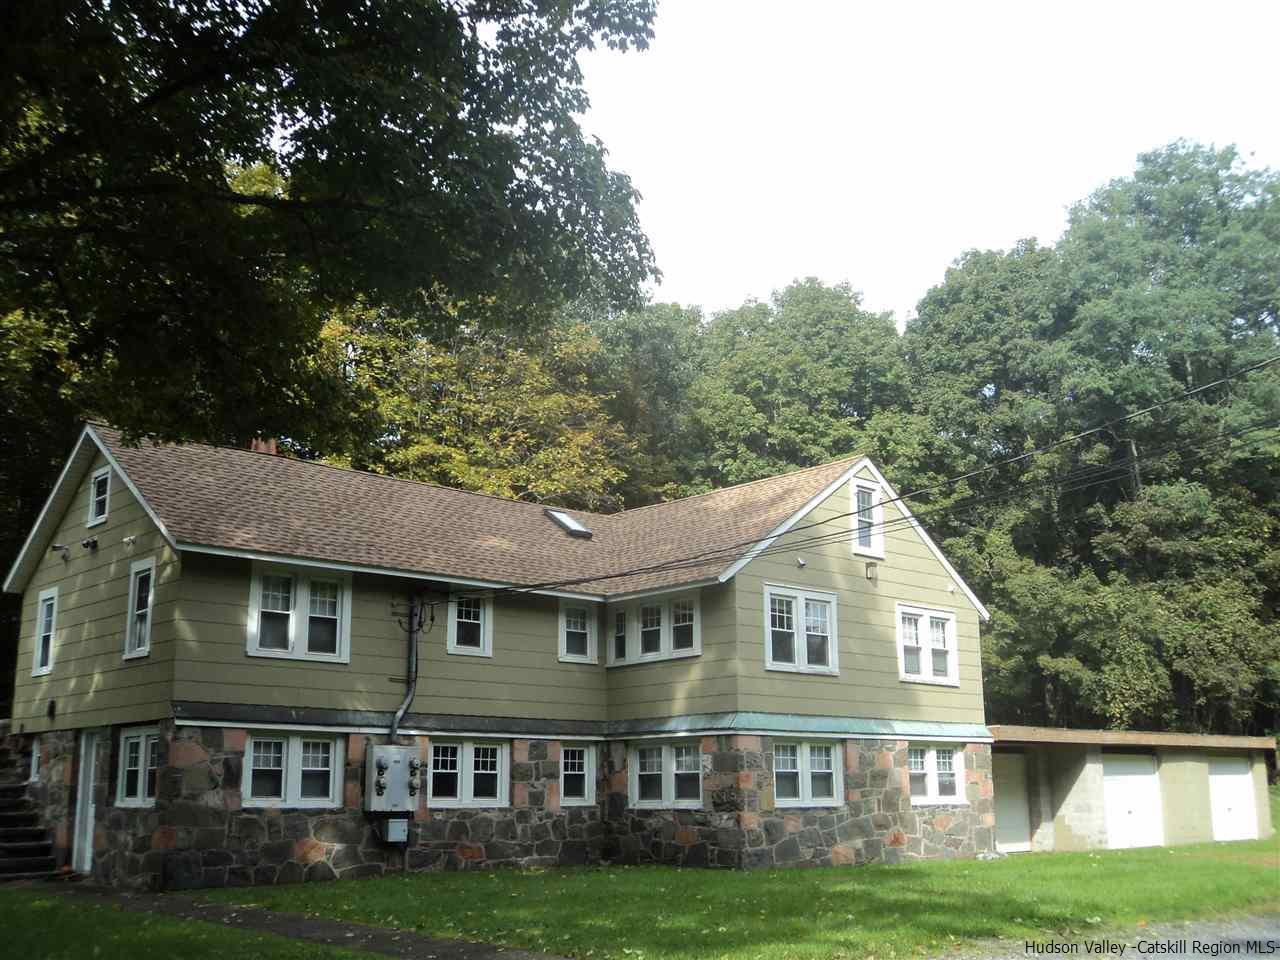 Single Family Home for Sale at 1718 Broadway (Rt 9W) Highway 1718 Broadway (Rt 9W) Highway West Park, New York 12493 United States